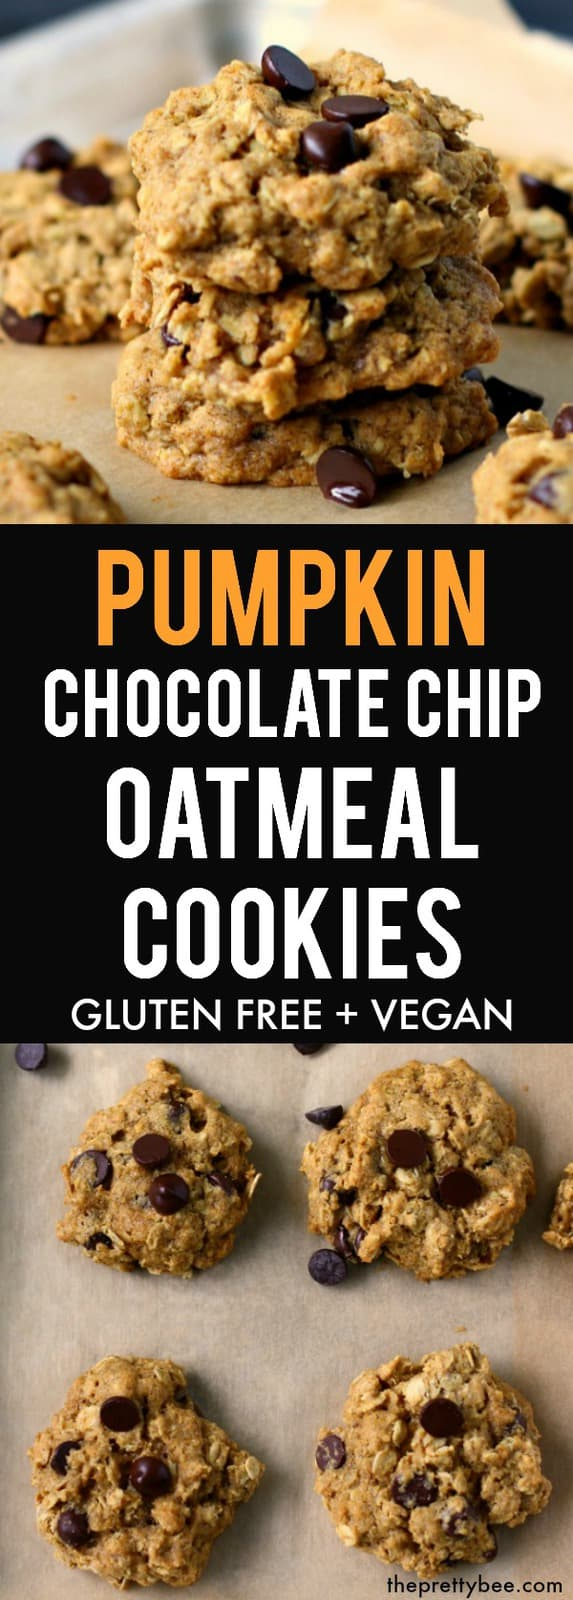 These chewy pumpkin chocolate chip oatmeal cookies are the perfect fall treat! These are delicious on a cool fall day. #pumpkin #vegan #glutenfree #dairyfree